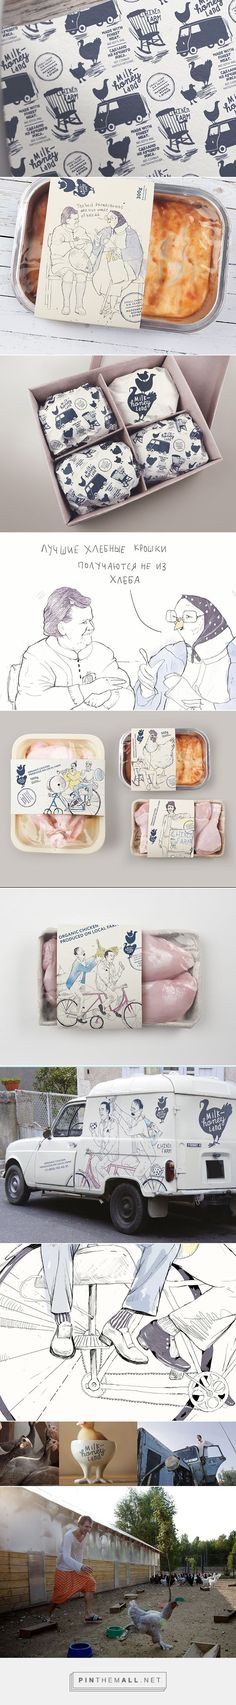 Milk & Honey Land. Depot WPF #packaging on #Behance by Vera Zvereva should bring a smile to your face curated by Packaging Diva PD created via